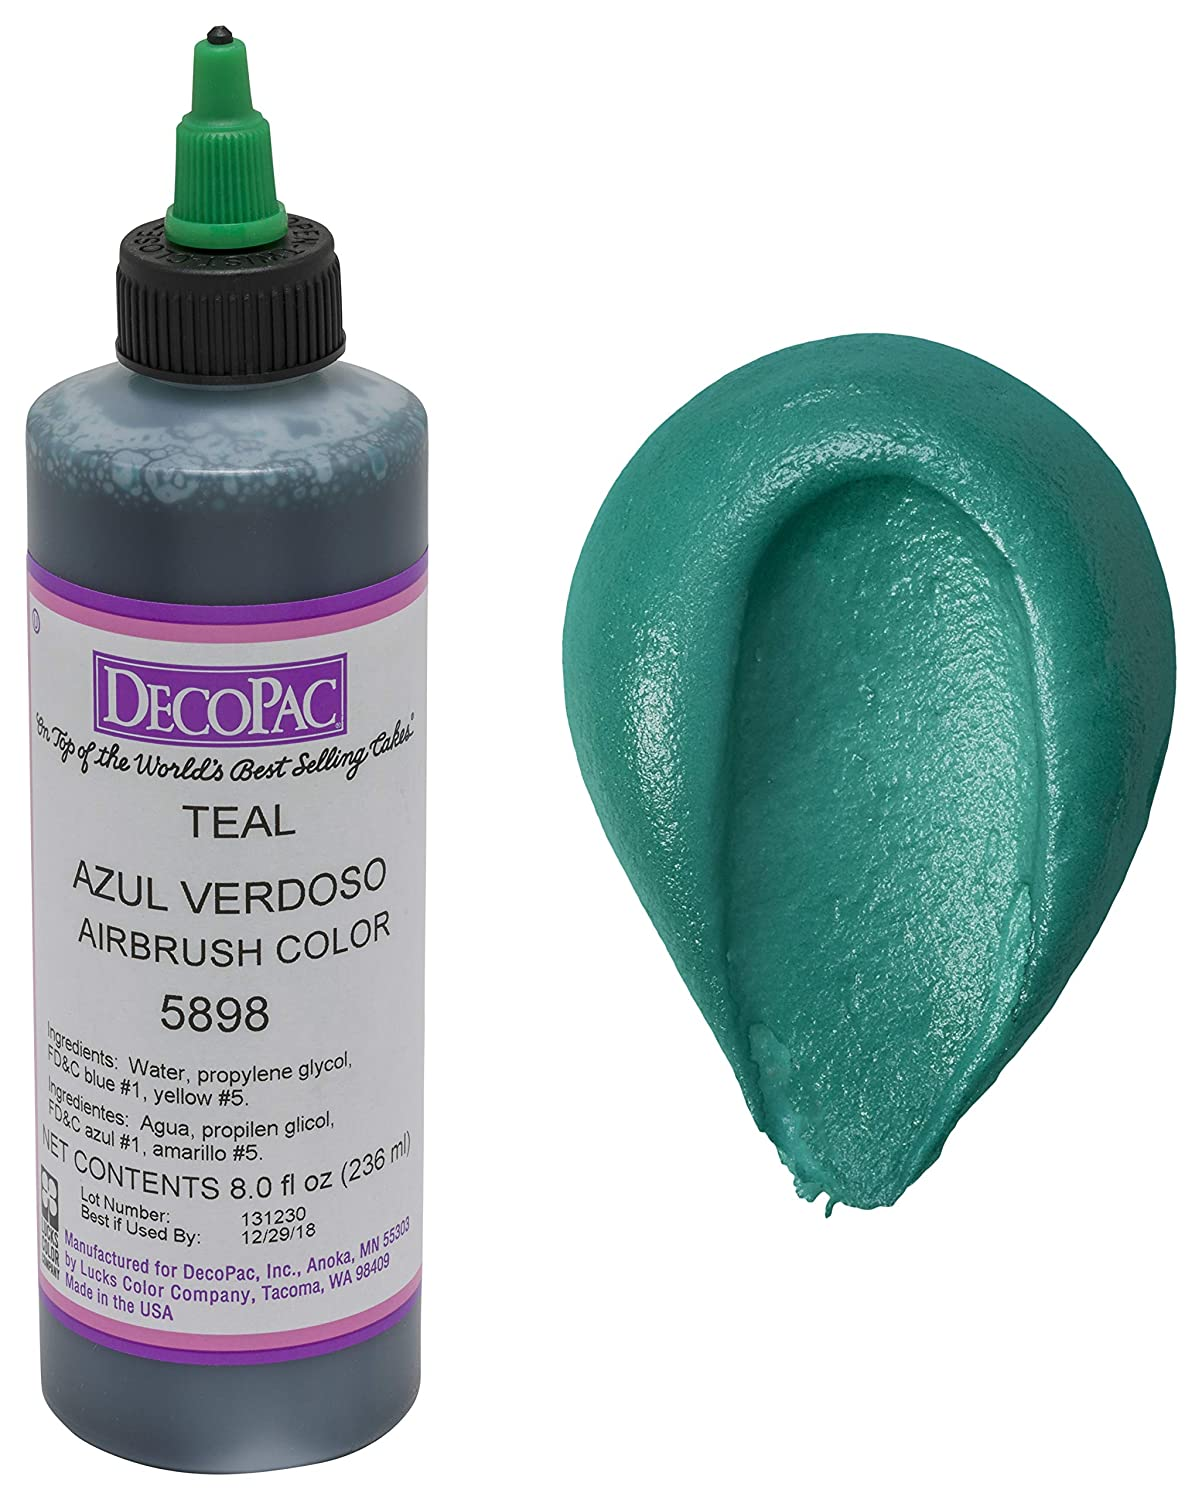 DecoPac Airbrush Color, Teal, .65 Pound